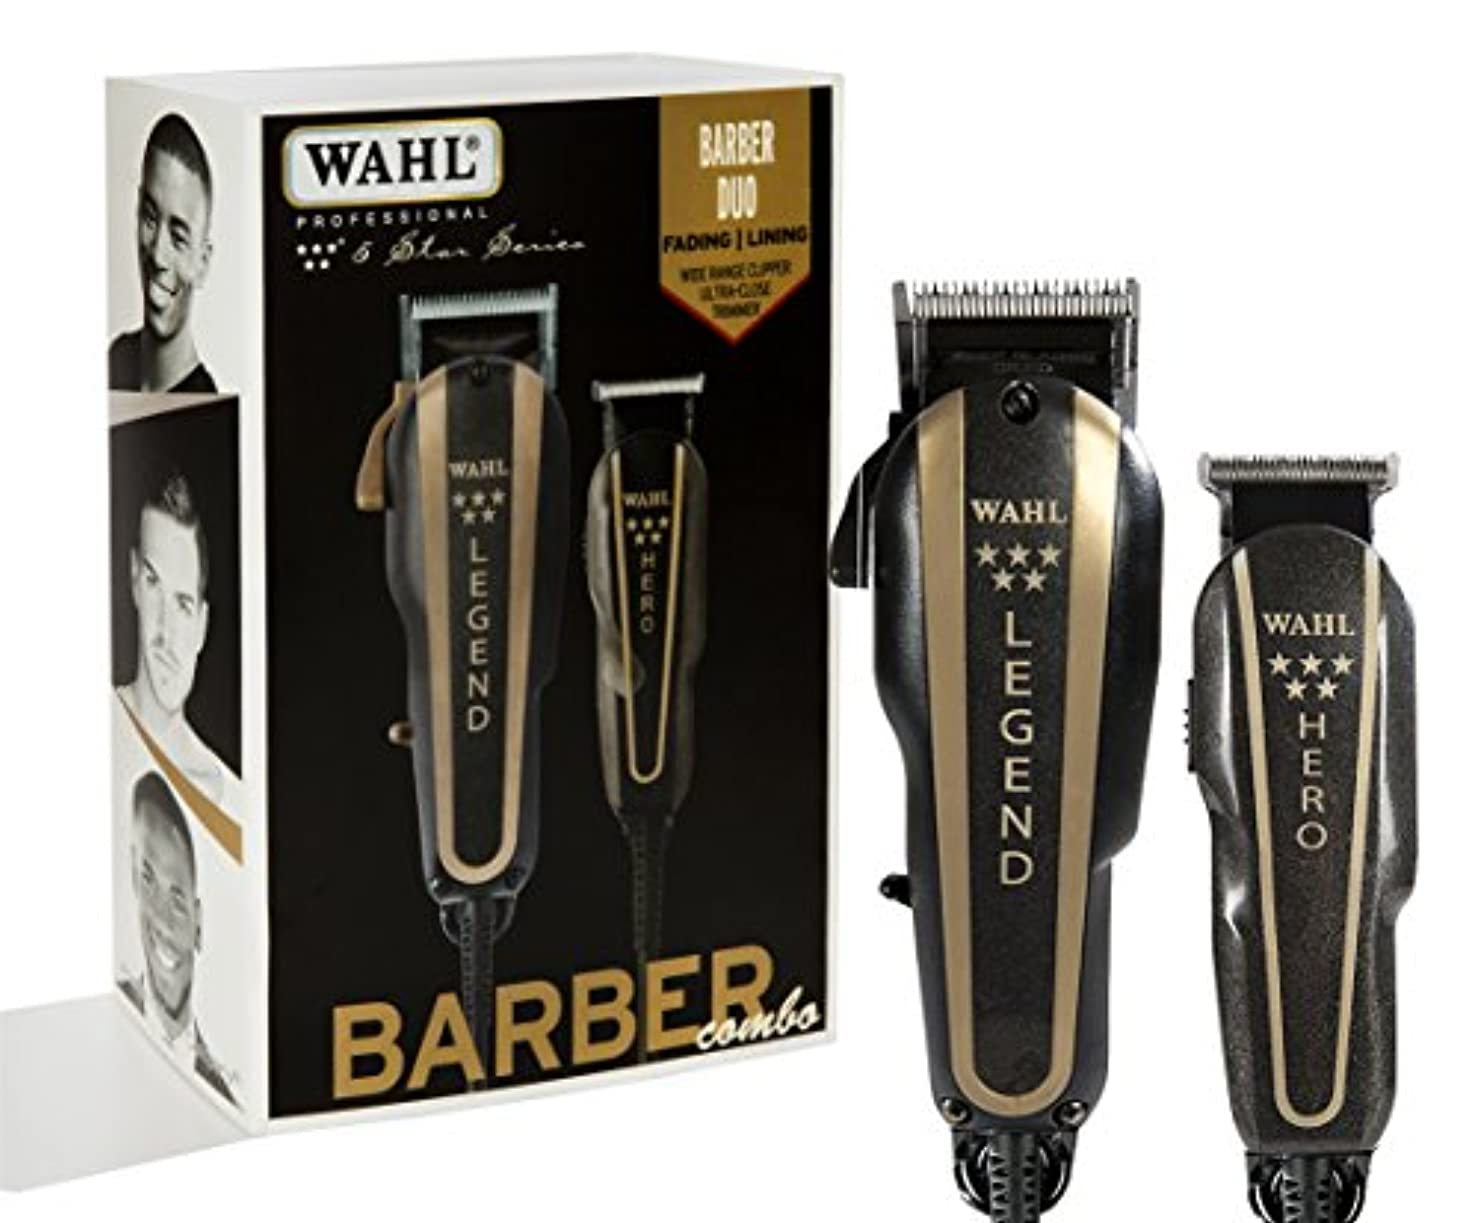 債務者ゾーン欲しいですWAHL Professional 5 Star Series Barber Combo No. 8180